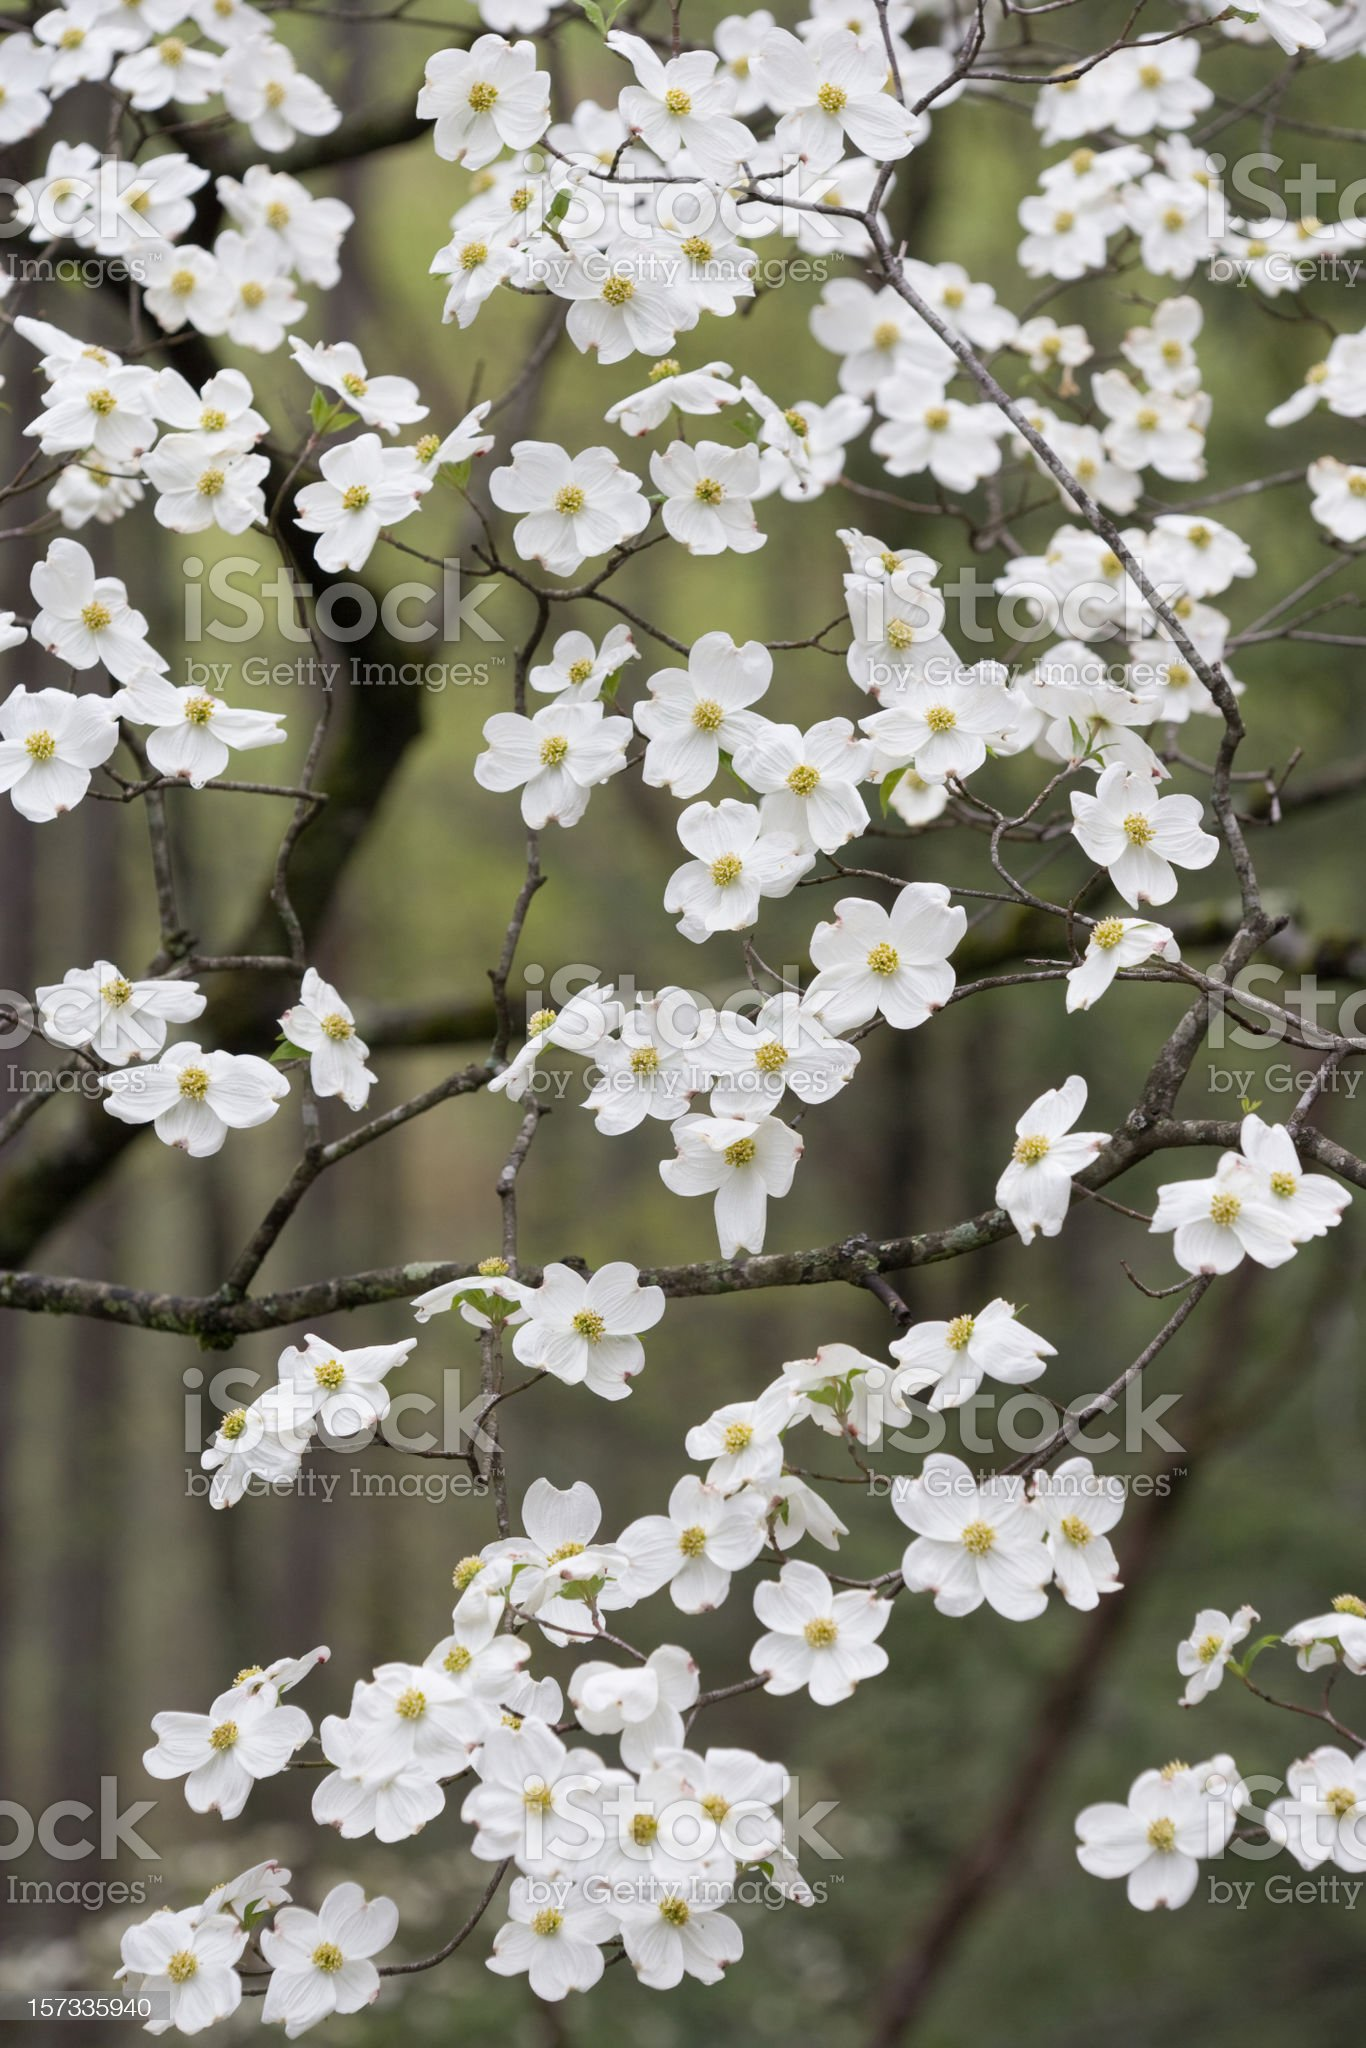 Shower of Dogwood Blossoms royalty-free stock photo